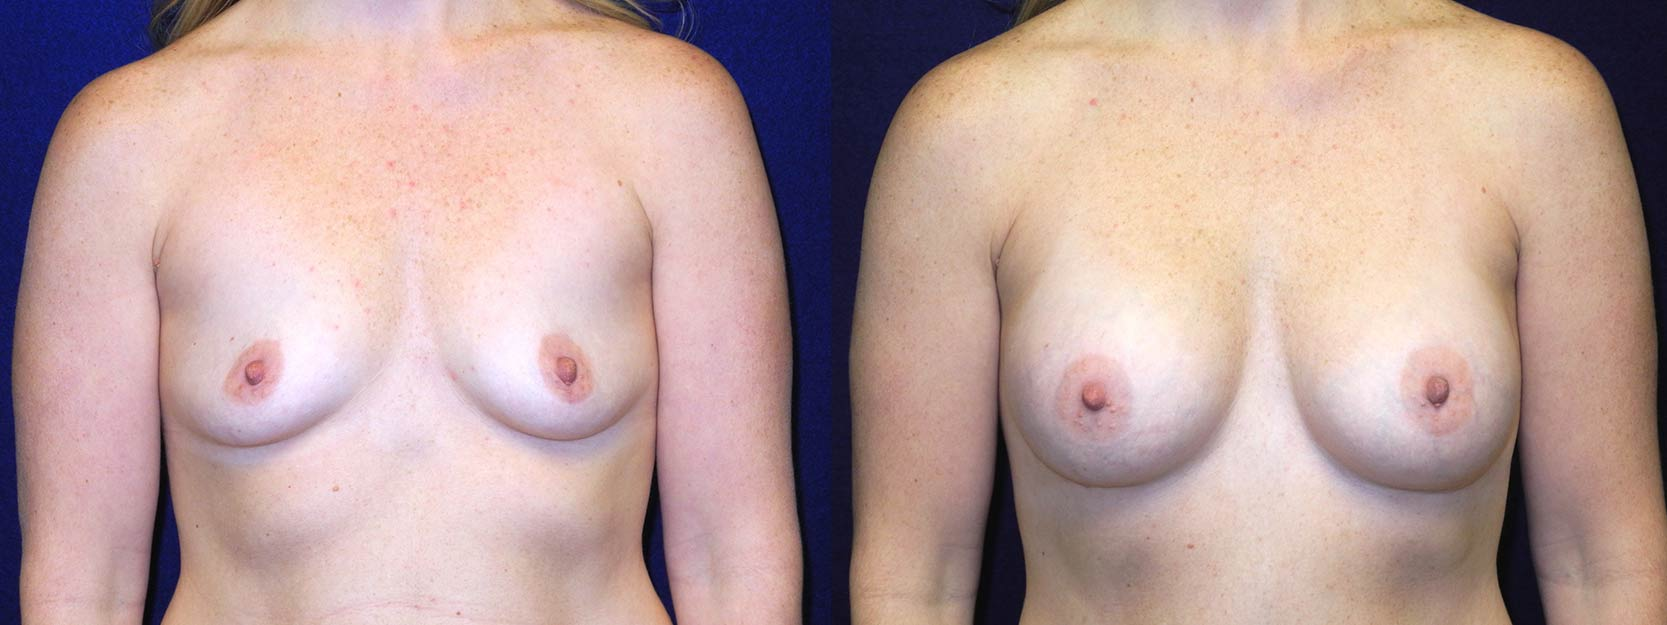 Frontal View - Breast Augmentation After Pregnancy